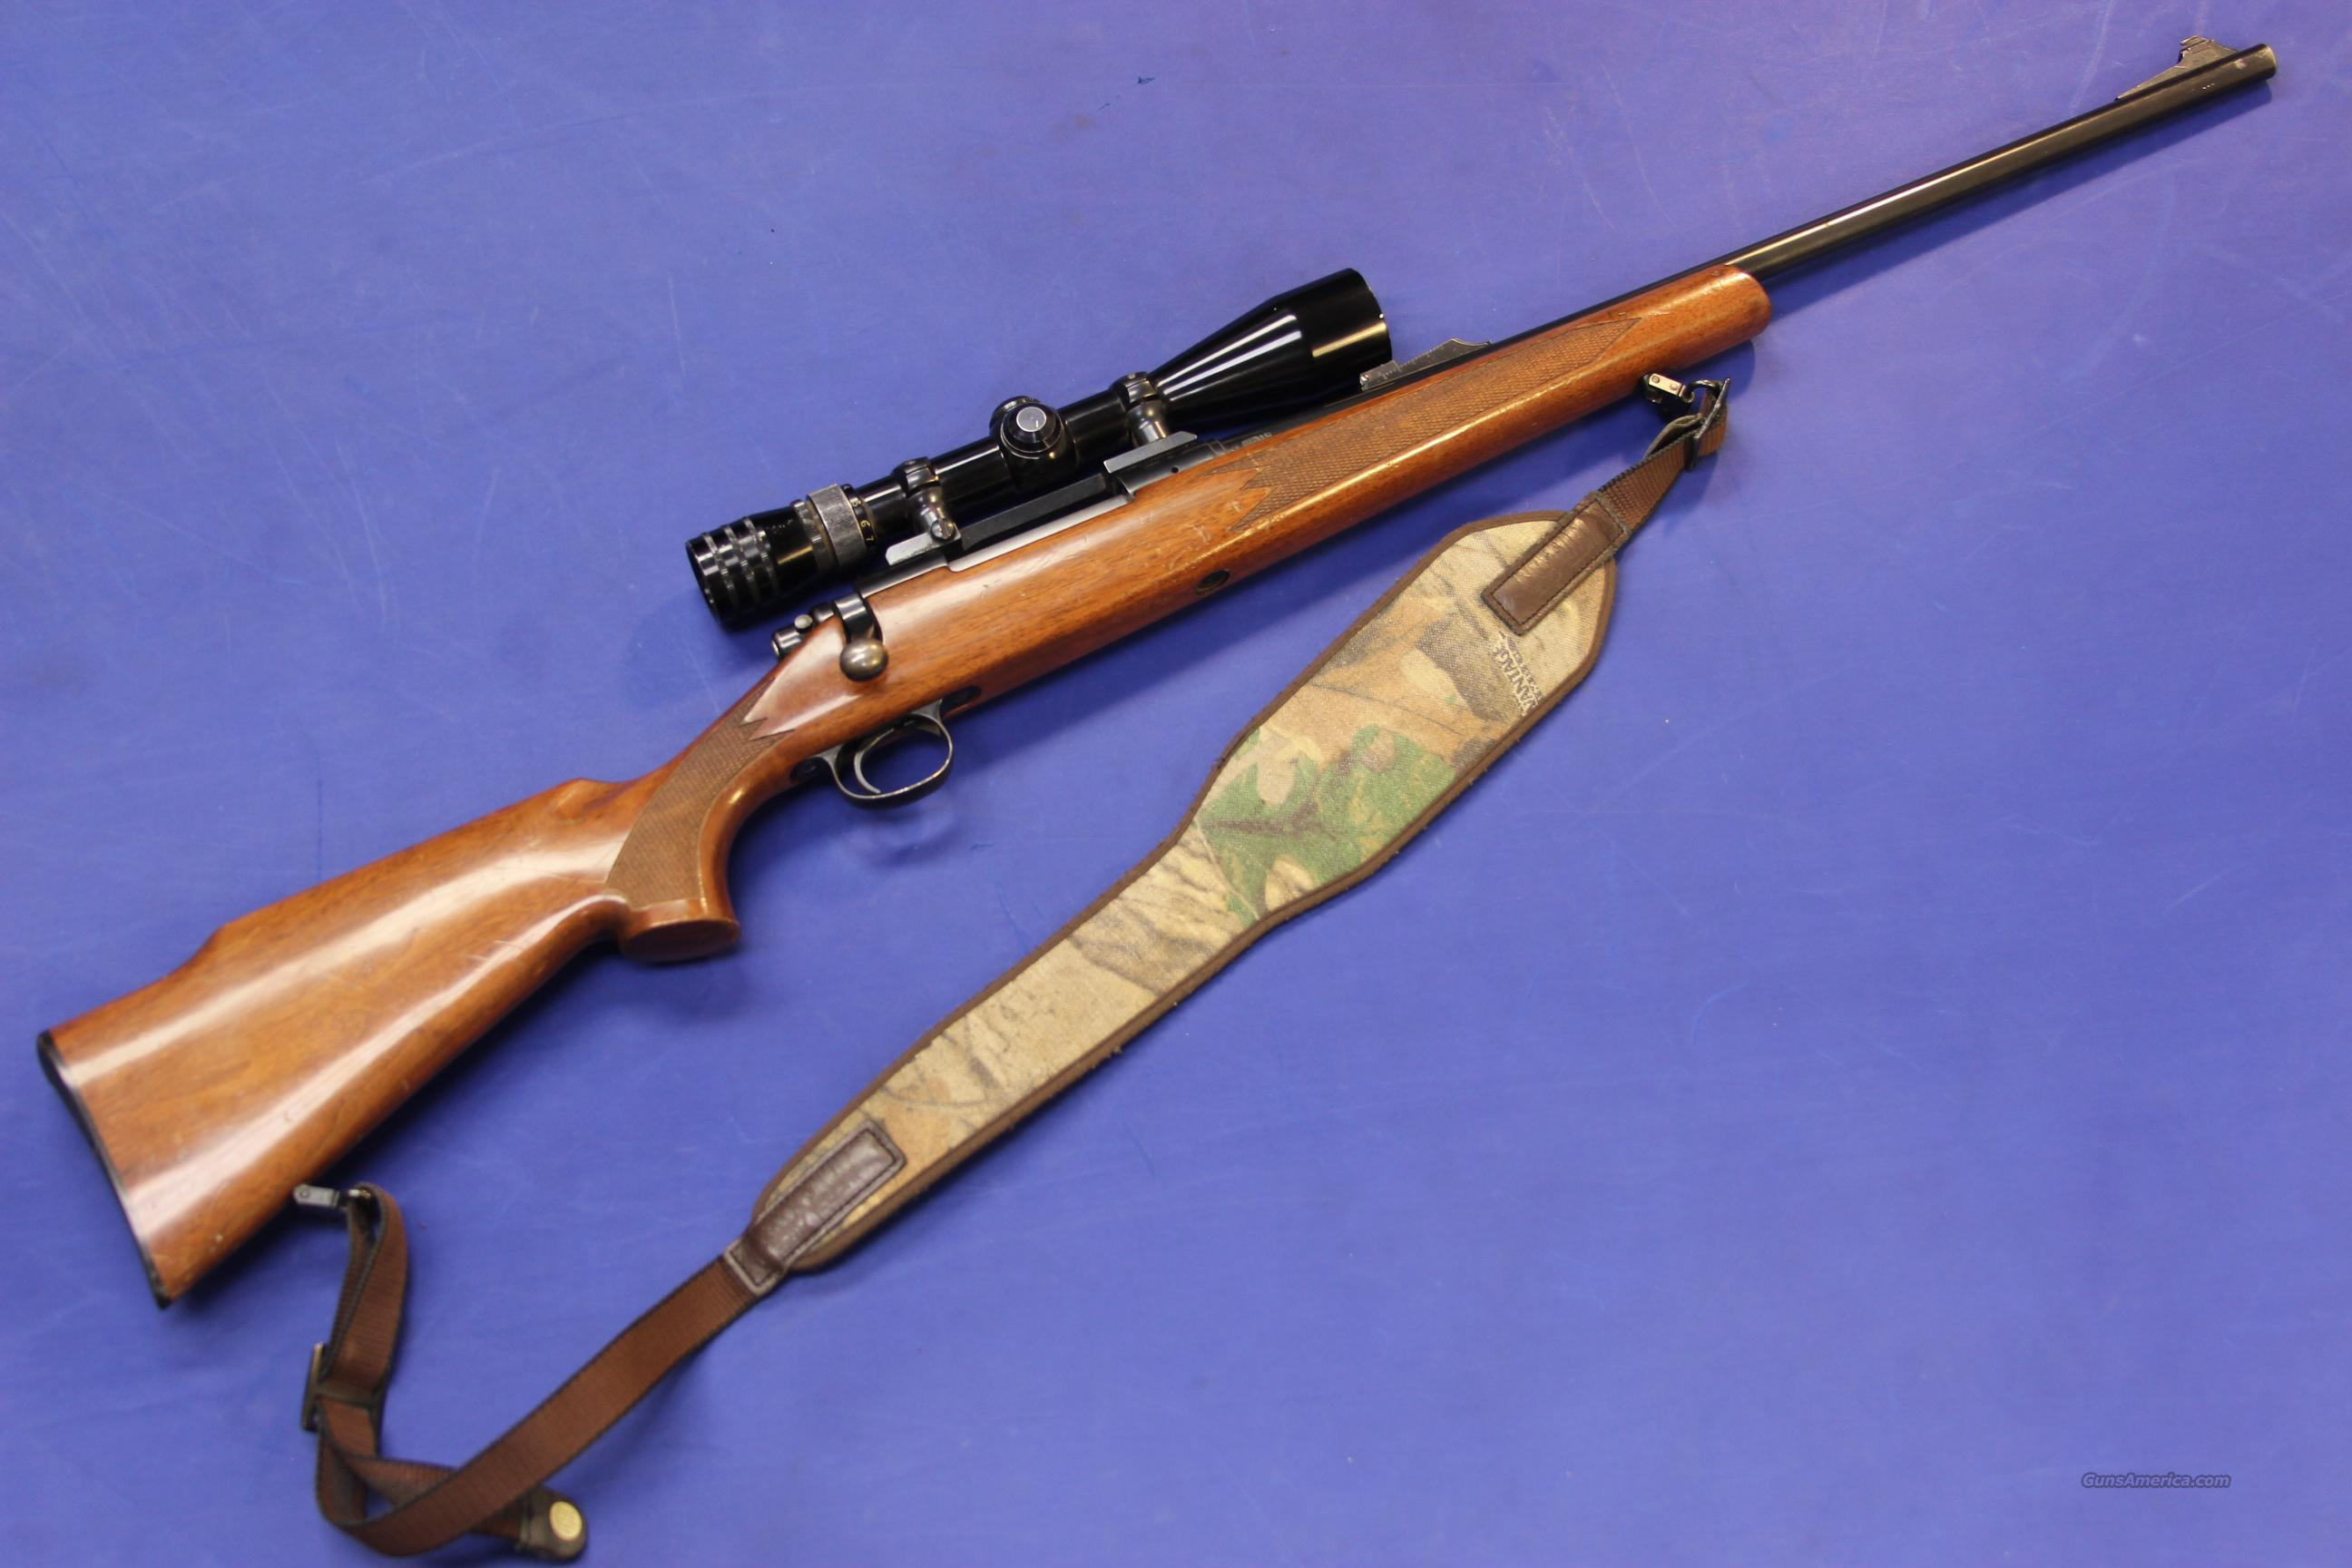 REMINGTON 700 ADL .270 WIN. w/ REDFIELD 3-9x40mm SCOPE  Guns > Rifles > Remington Rifles - Modern > Model 700 > Sporting